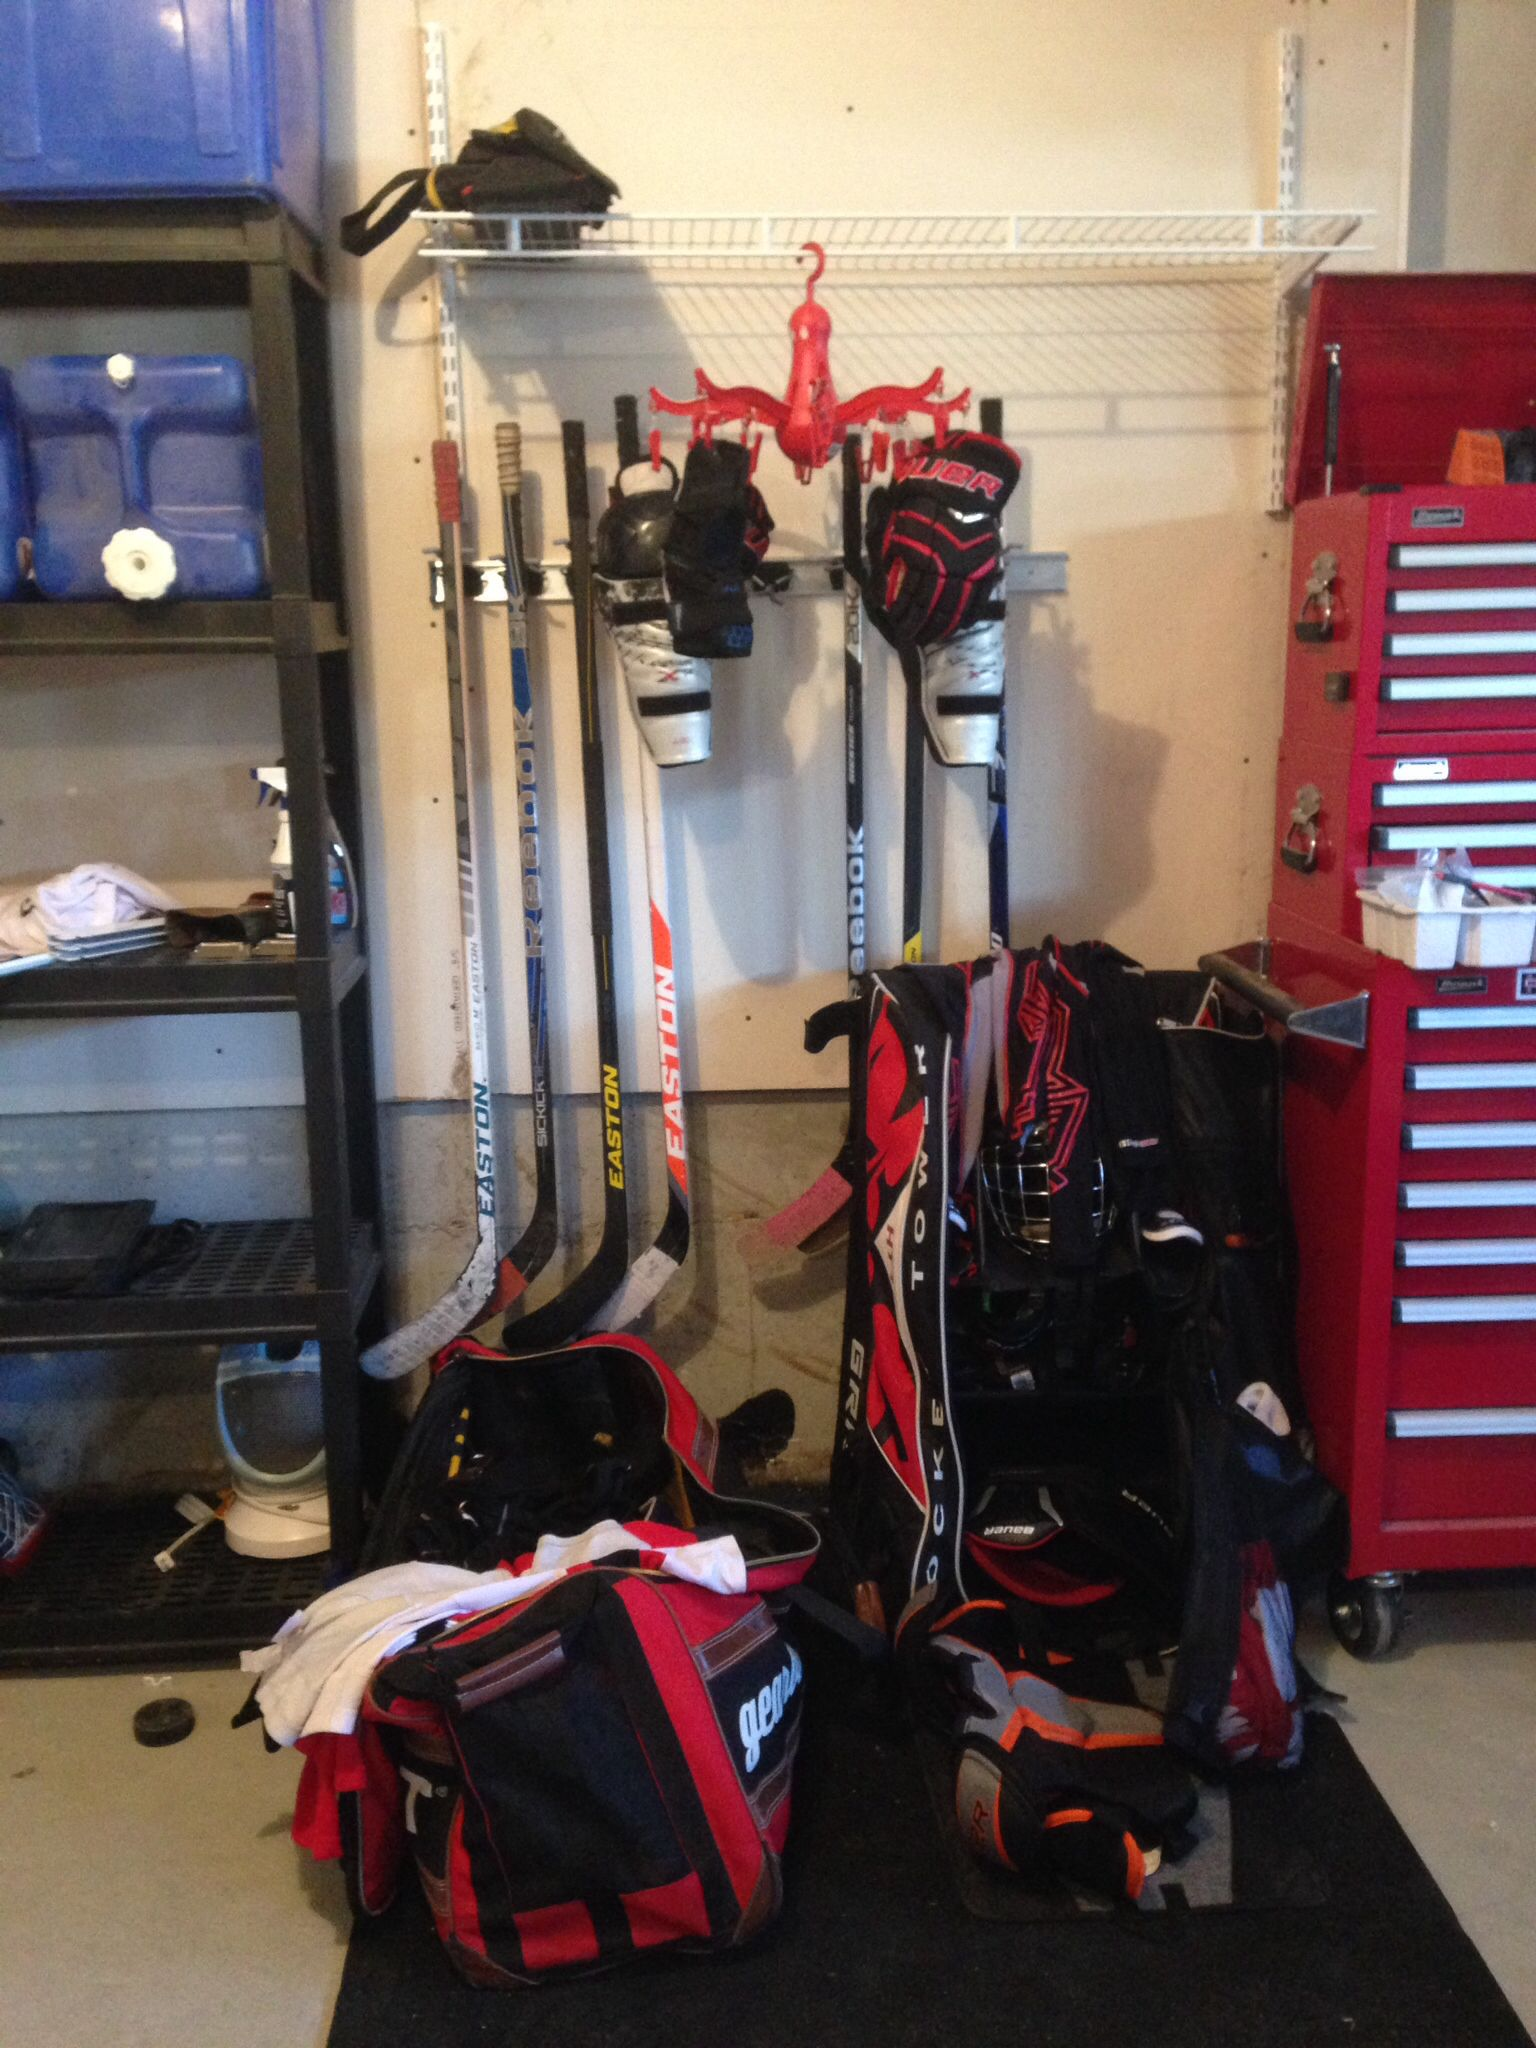 Hockey Equip Organized For This Season Hockey Equipment Hockey Equipment Storage Hockey Organization